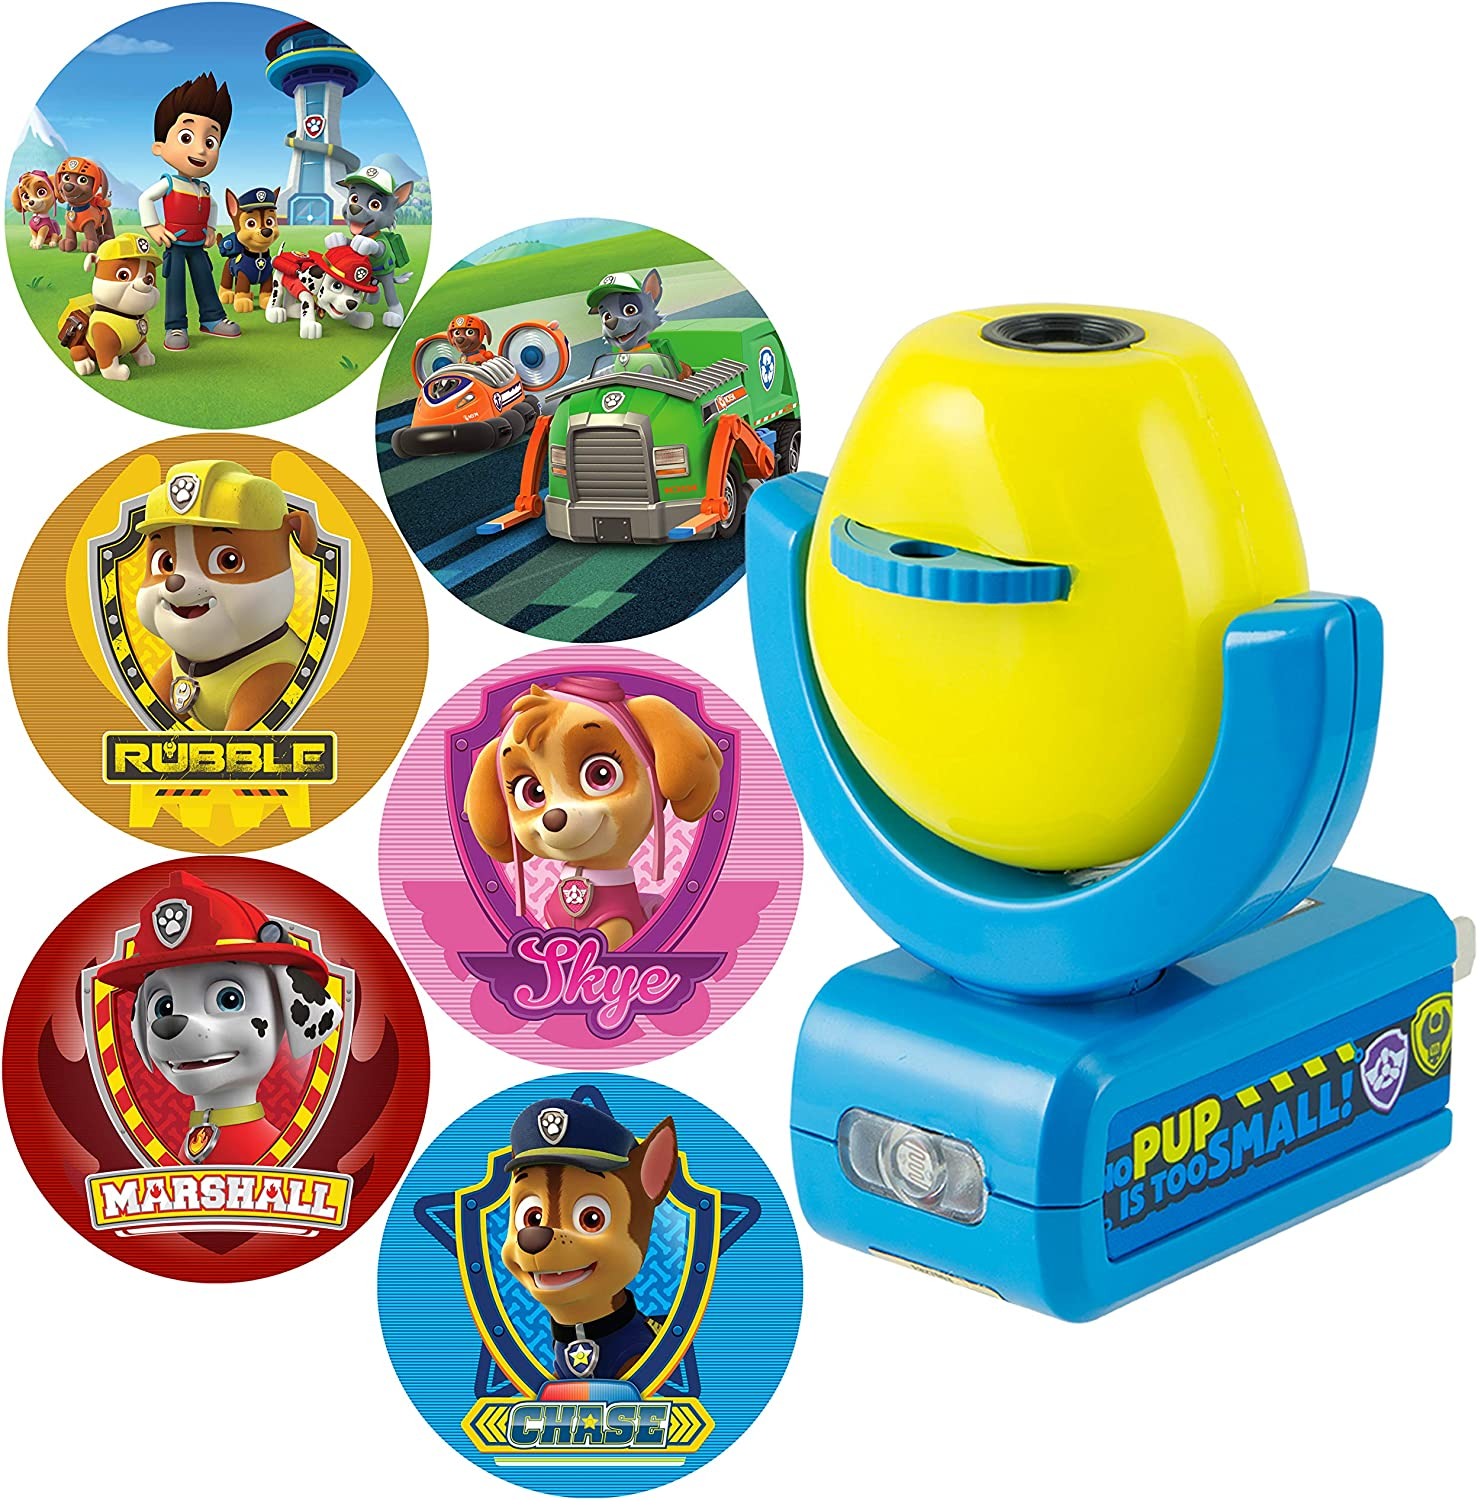 Projectables 30605 Paw Patrol 6-Image LED Plug-In Night Light, Yellow and Blue, Light Sensing, Auto On/Off, Projects Six Different Nickelodeon Paw Patrol Images Onto Wall or Ceiling